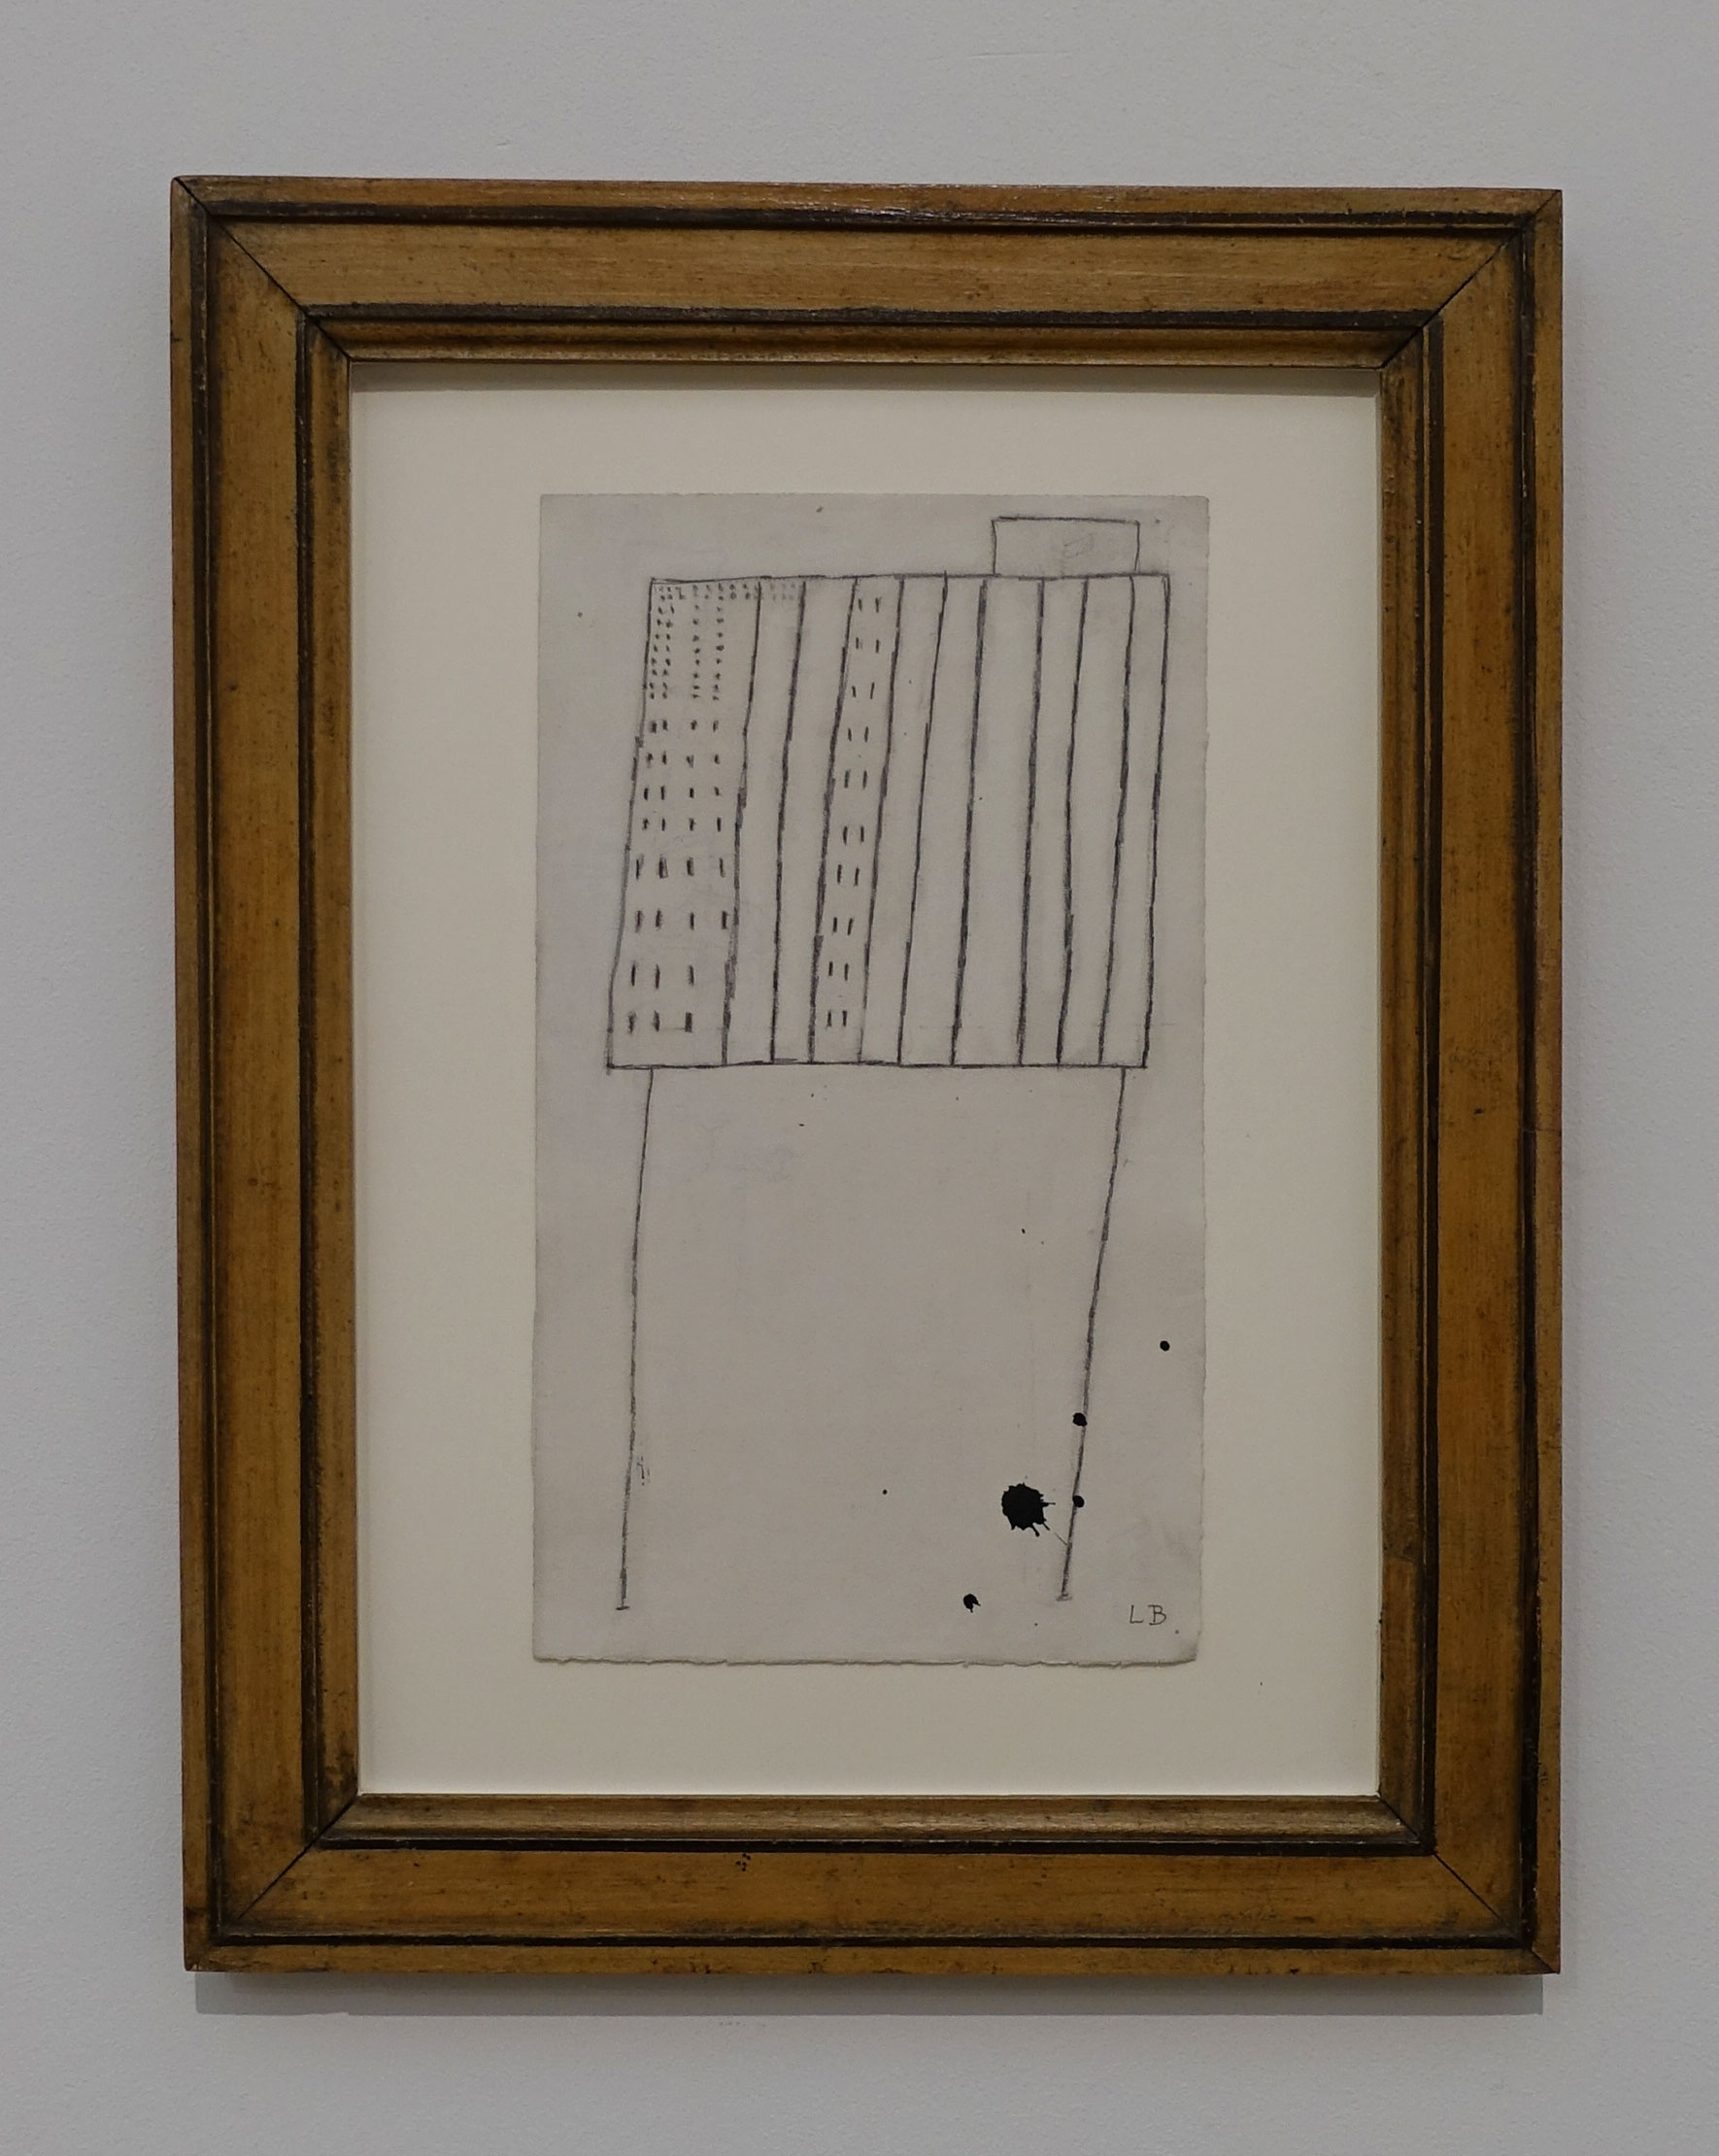 A precious drawing by Louise Bourgeois at Houser & Wirth